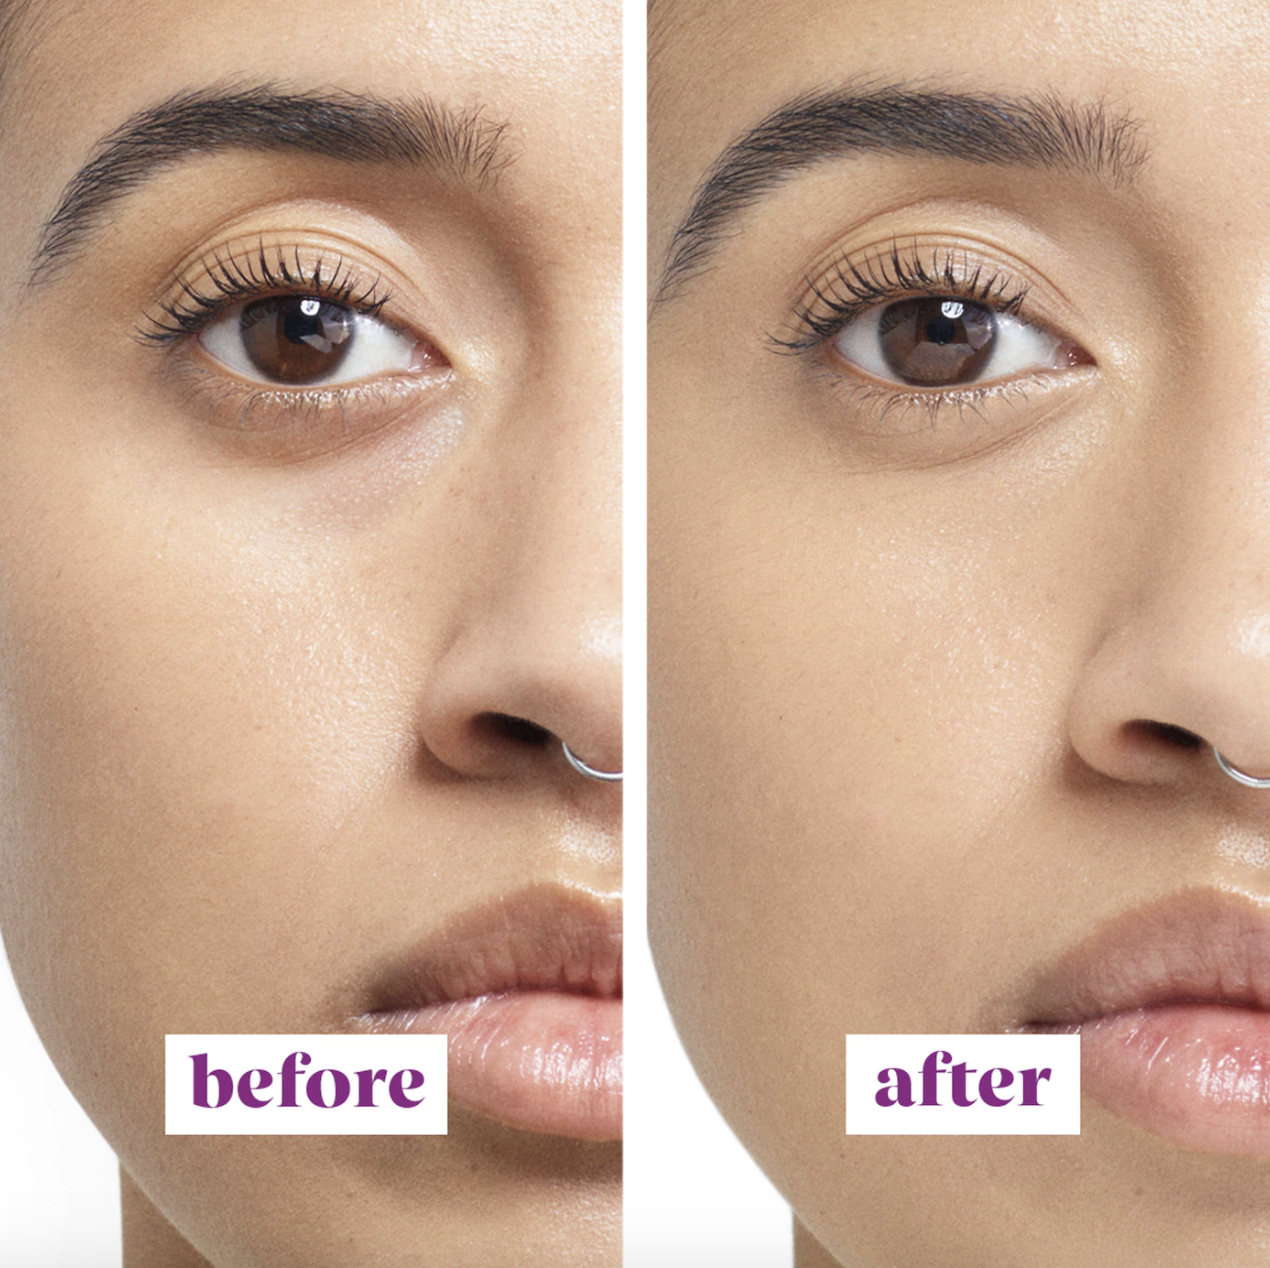 before and after photo of model with dark circles on left and visibly reduced dark circles on right